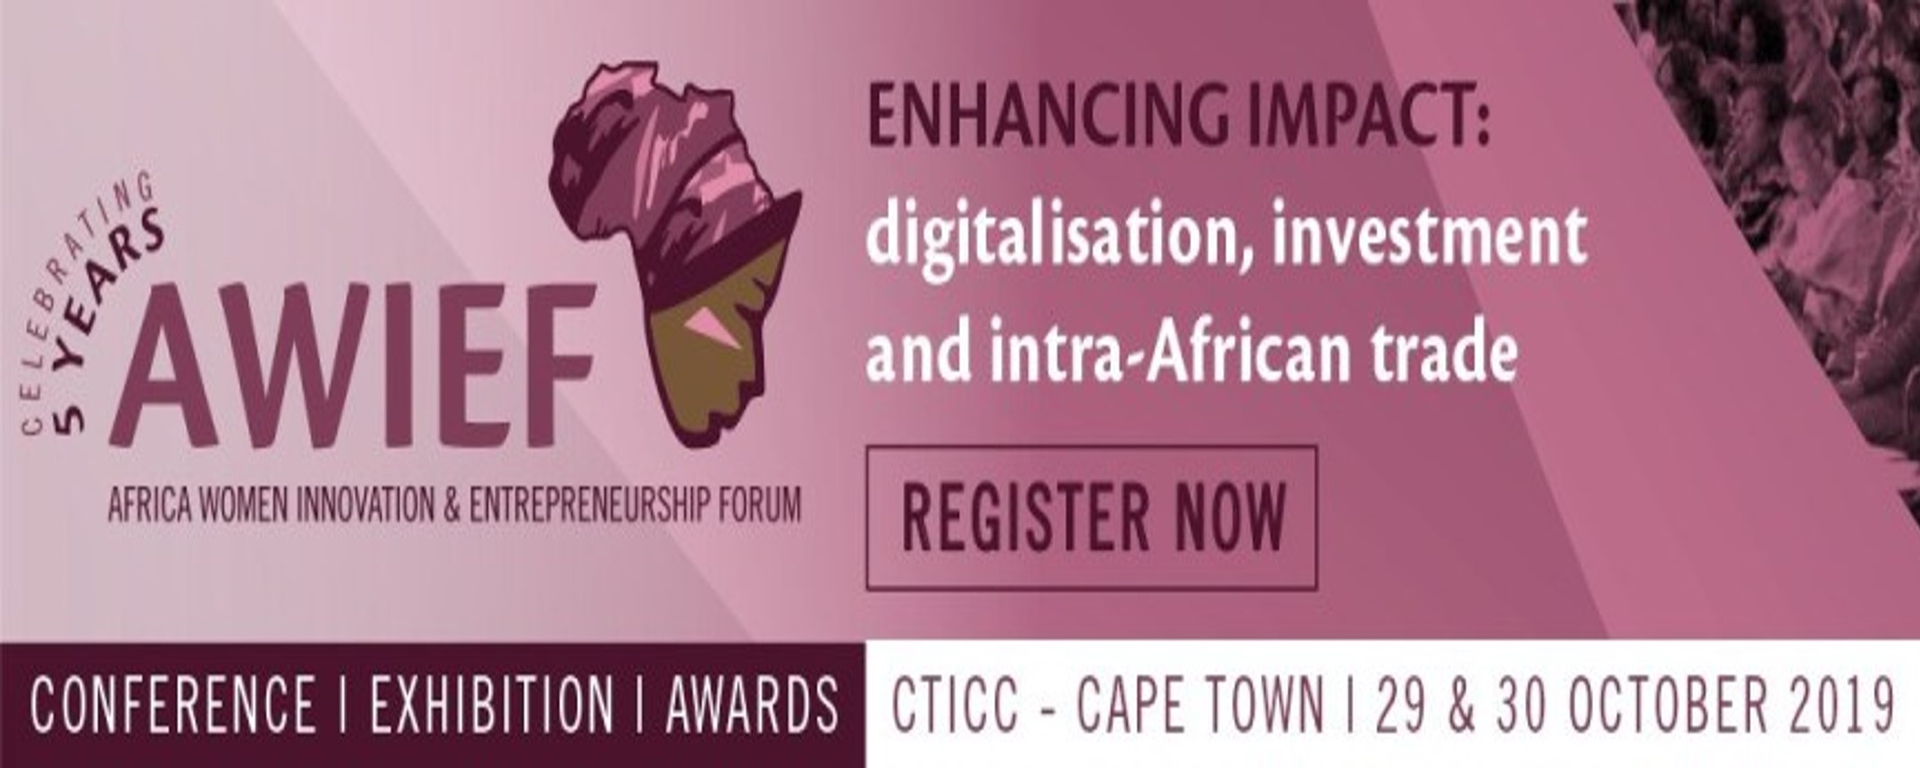 AWIEF - 5th Africa Women Innovation & Entrepreneurship Forum Conference & Exhibition Movemeback African event cover image